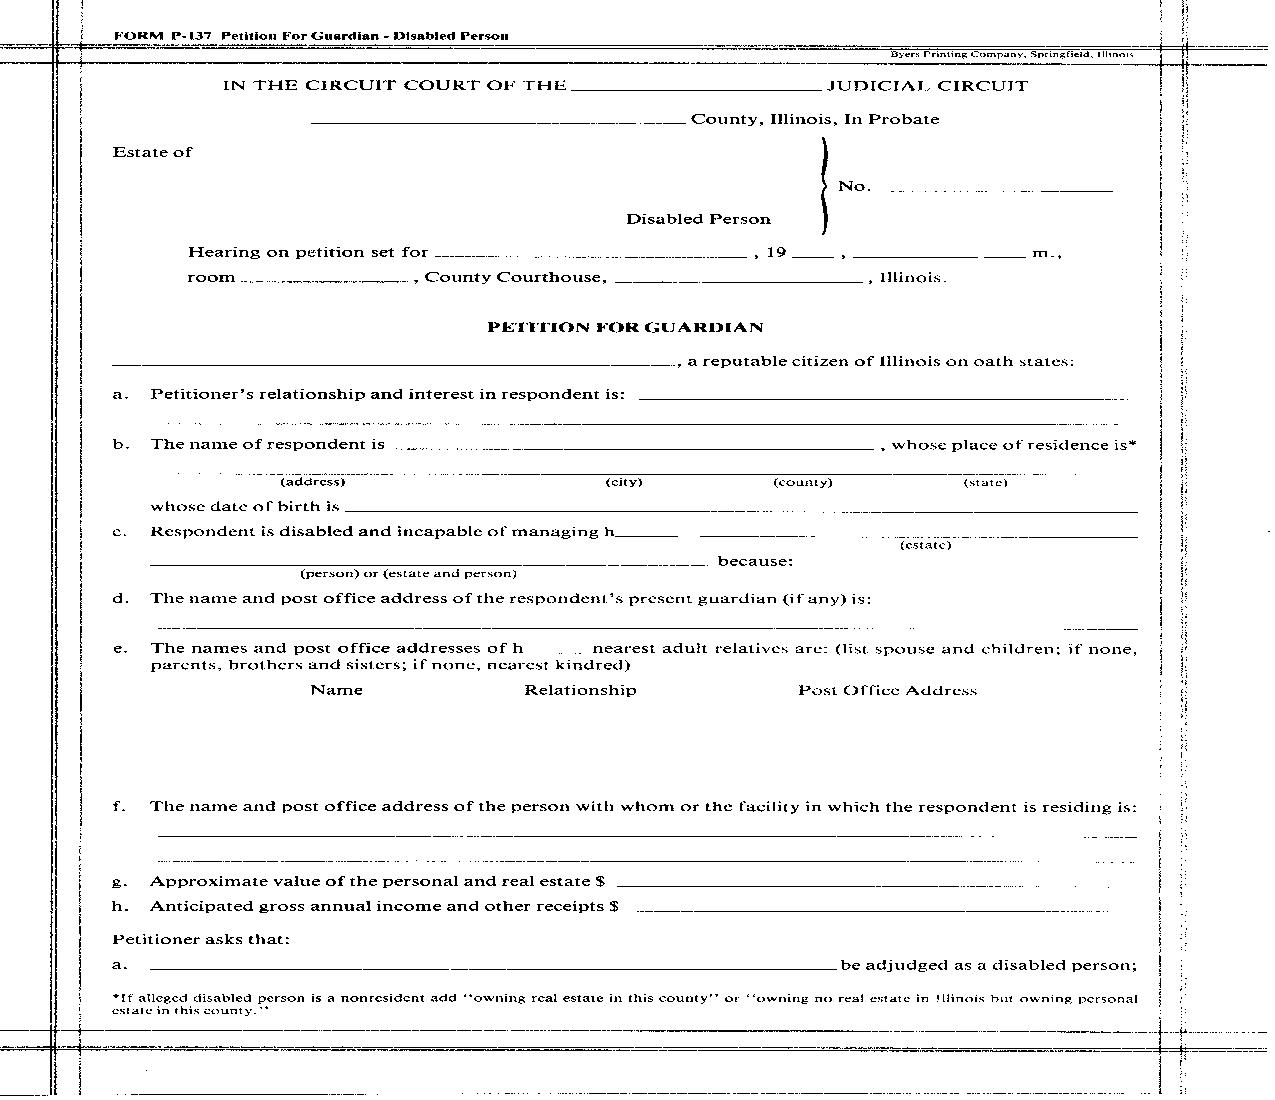 Petition For Guardian (Disabled Person) {P-137}   Pdf Fpdf Doc Docx   Illinois